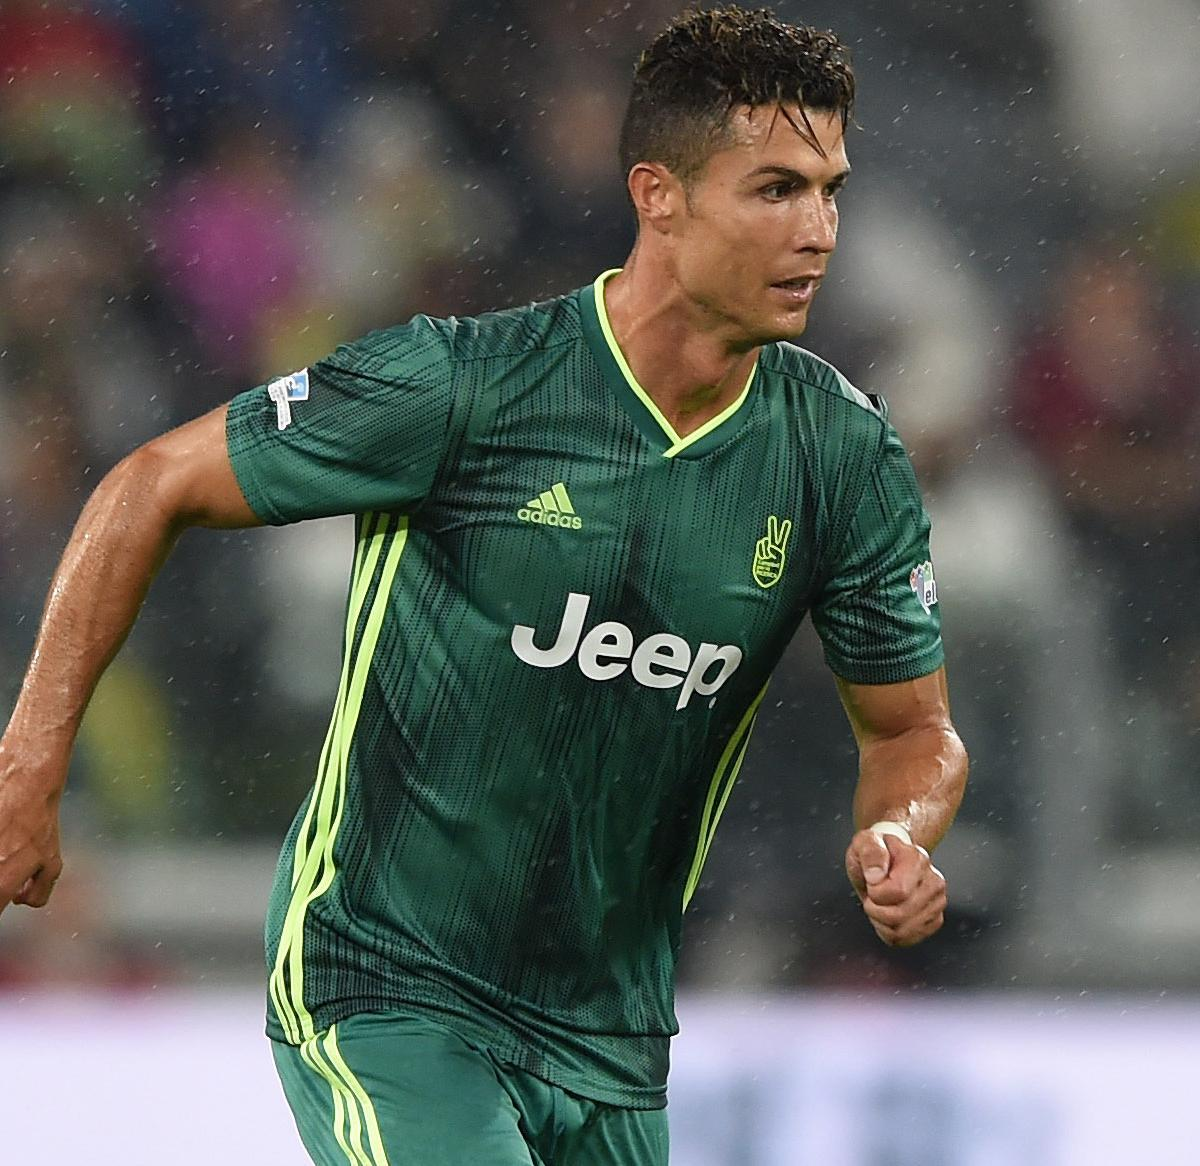 low priced 65d7e 418f4 Report: Cristiano Ronaldo Rape Lawsuit Dropped by Accuser ...